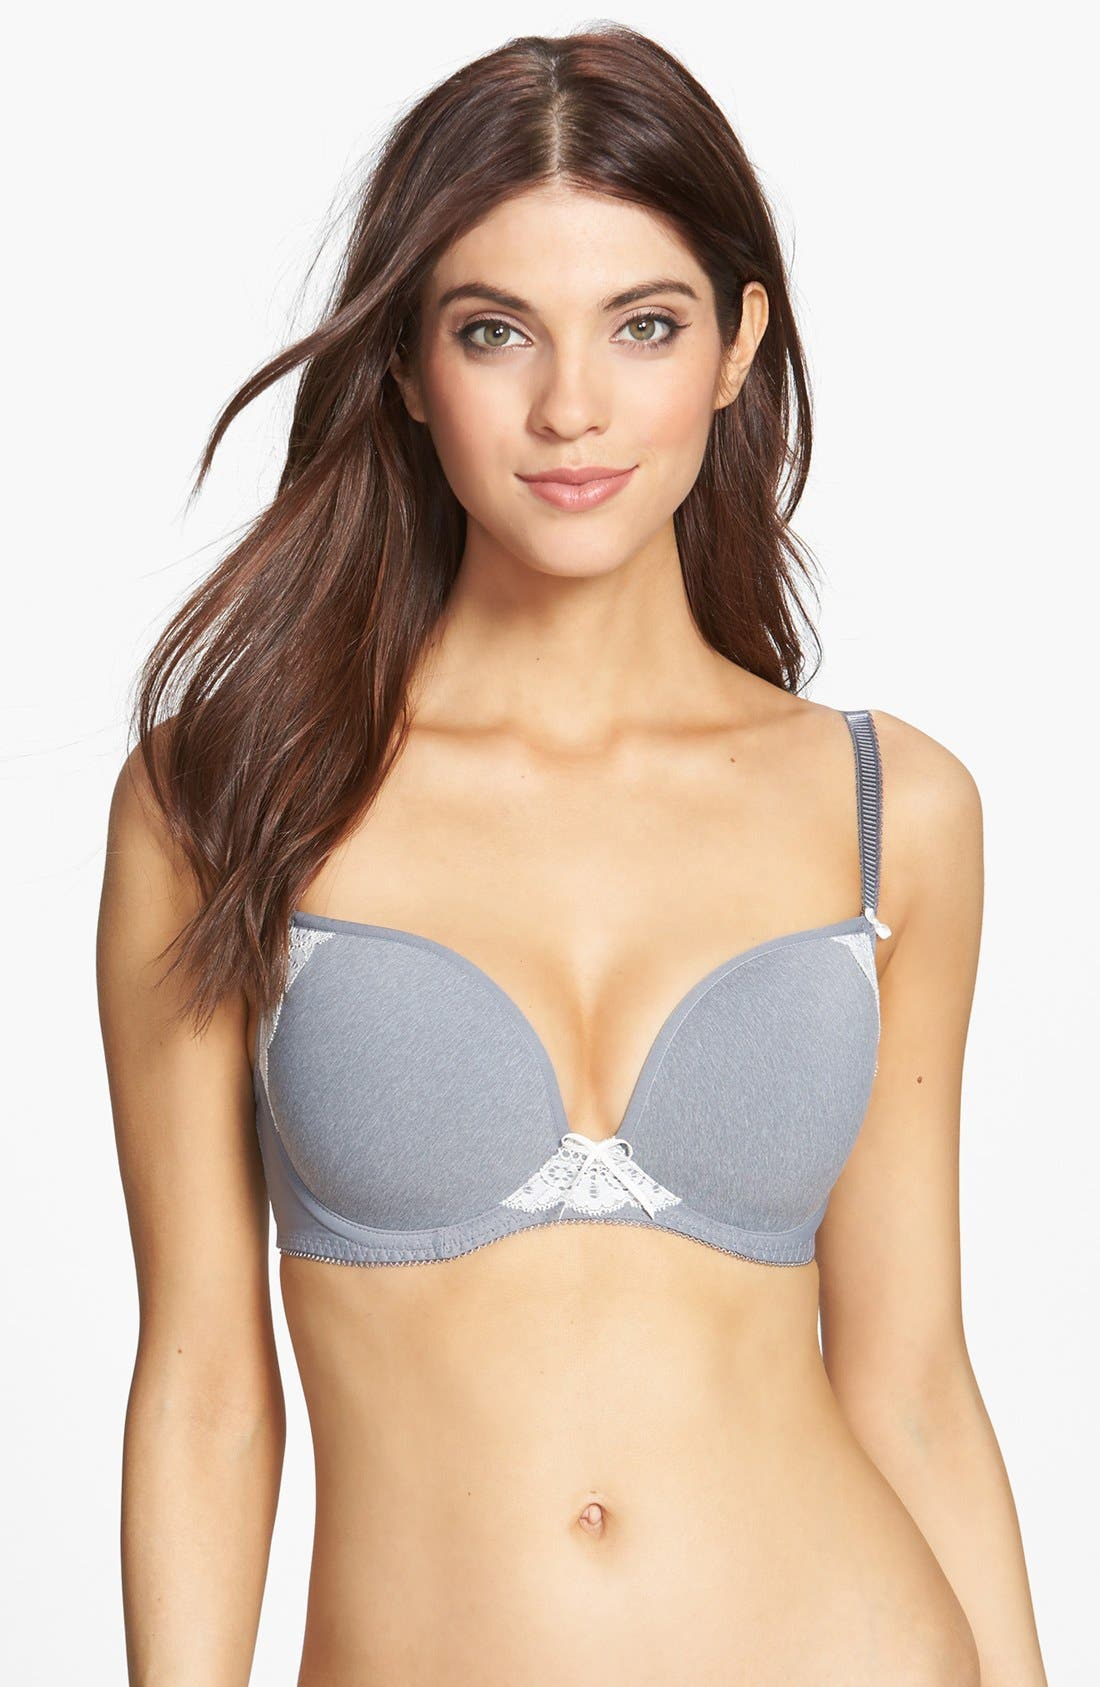 Main Image - Freya 'Deco Delight' Convertible Underwire Molded Plunge Bra (D-Cup & Up) (Online Only)